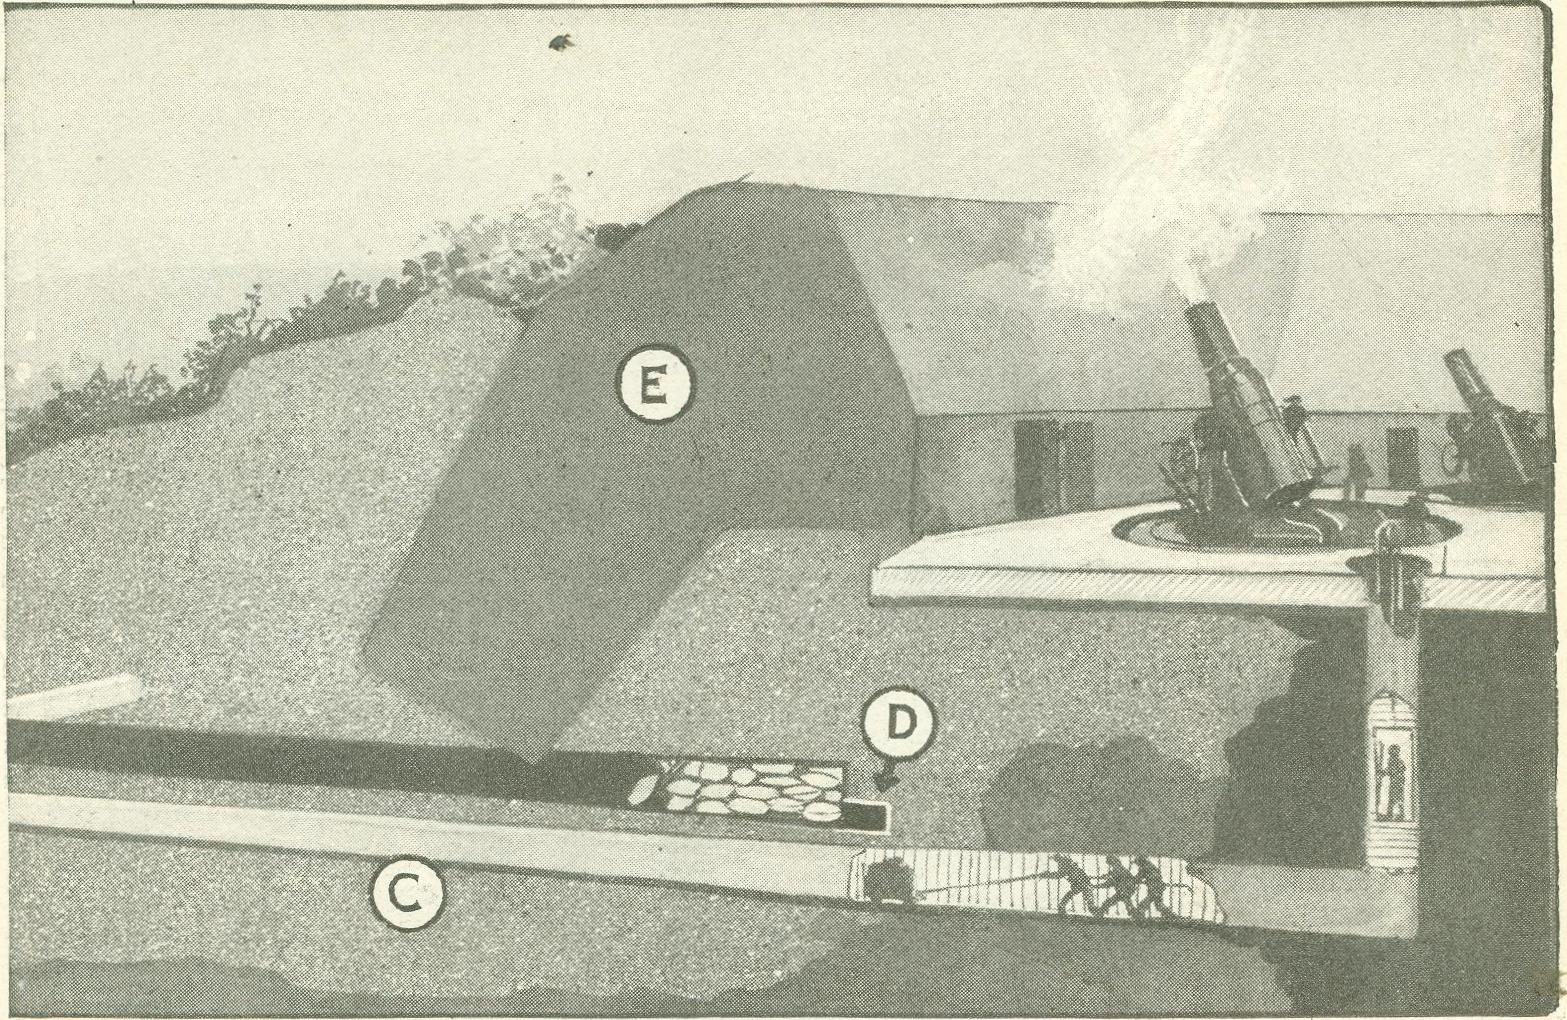 ww1 trench system diagram 220 volt wiring warfare get free image about